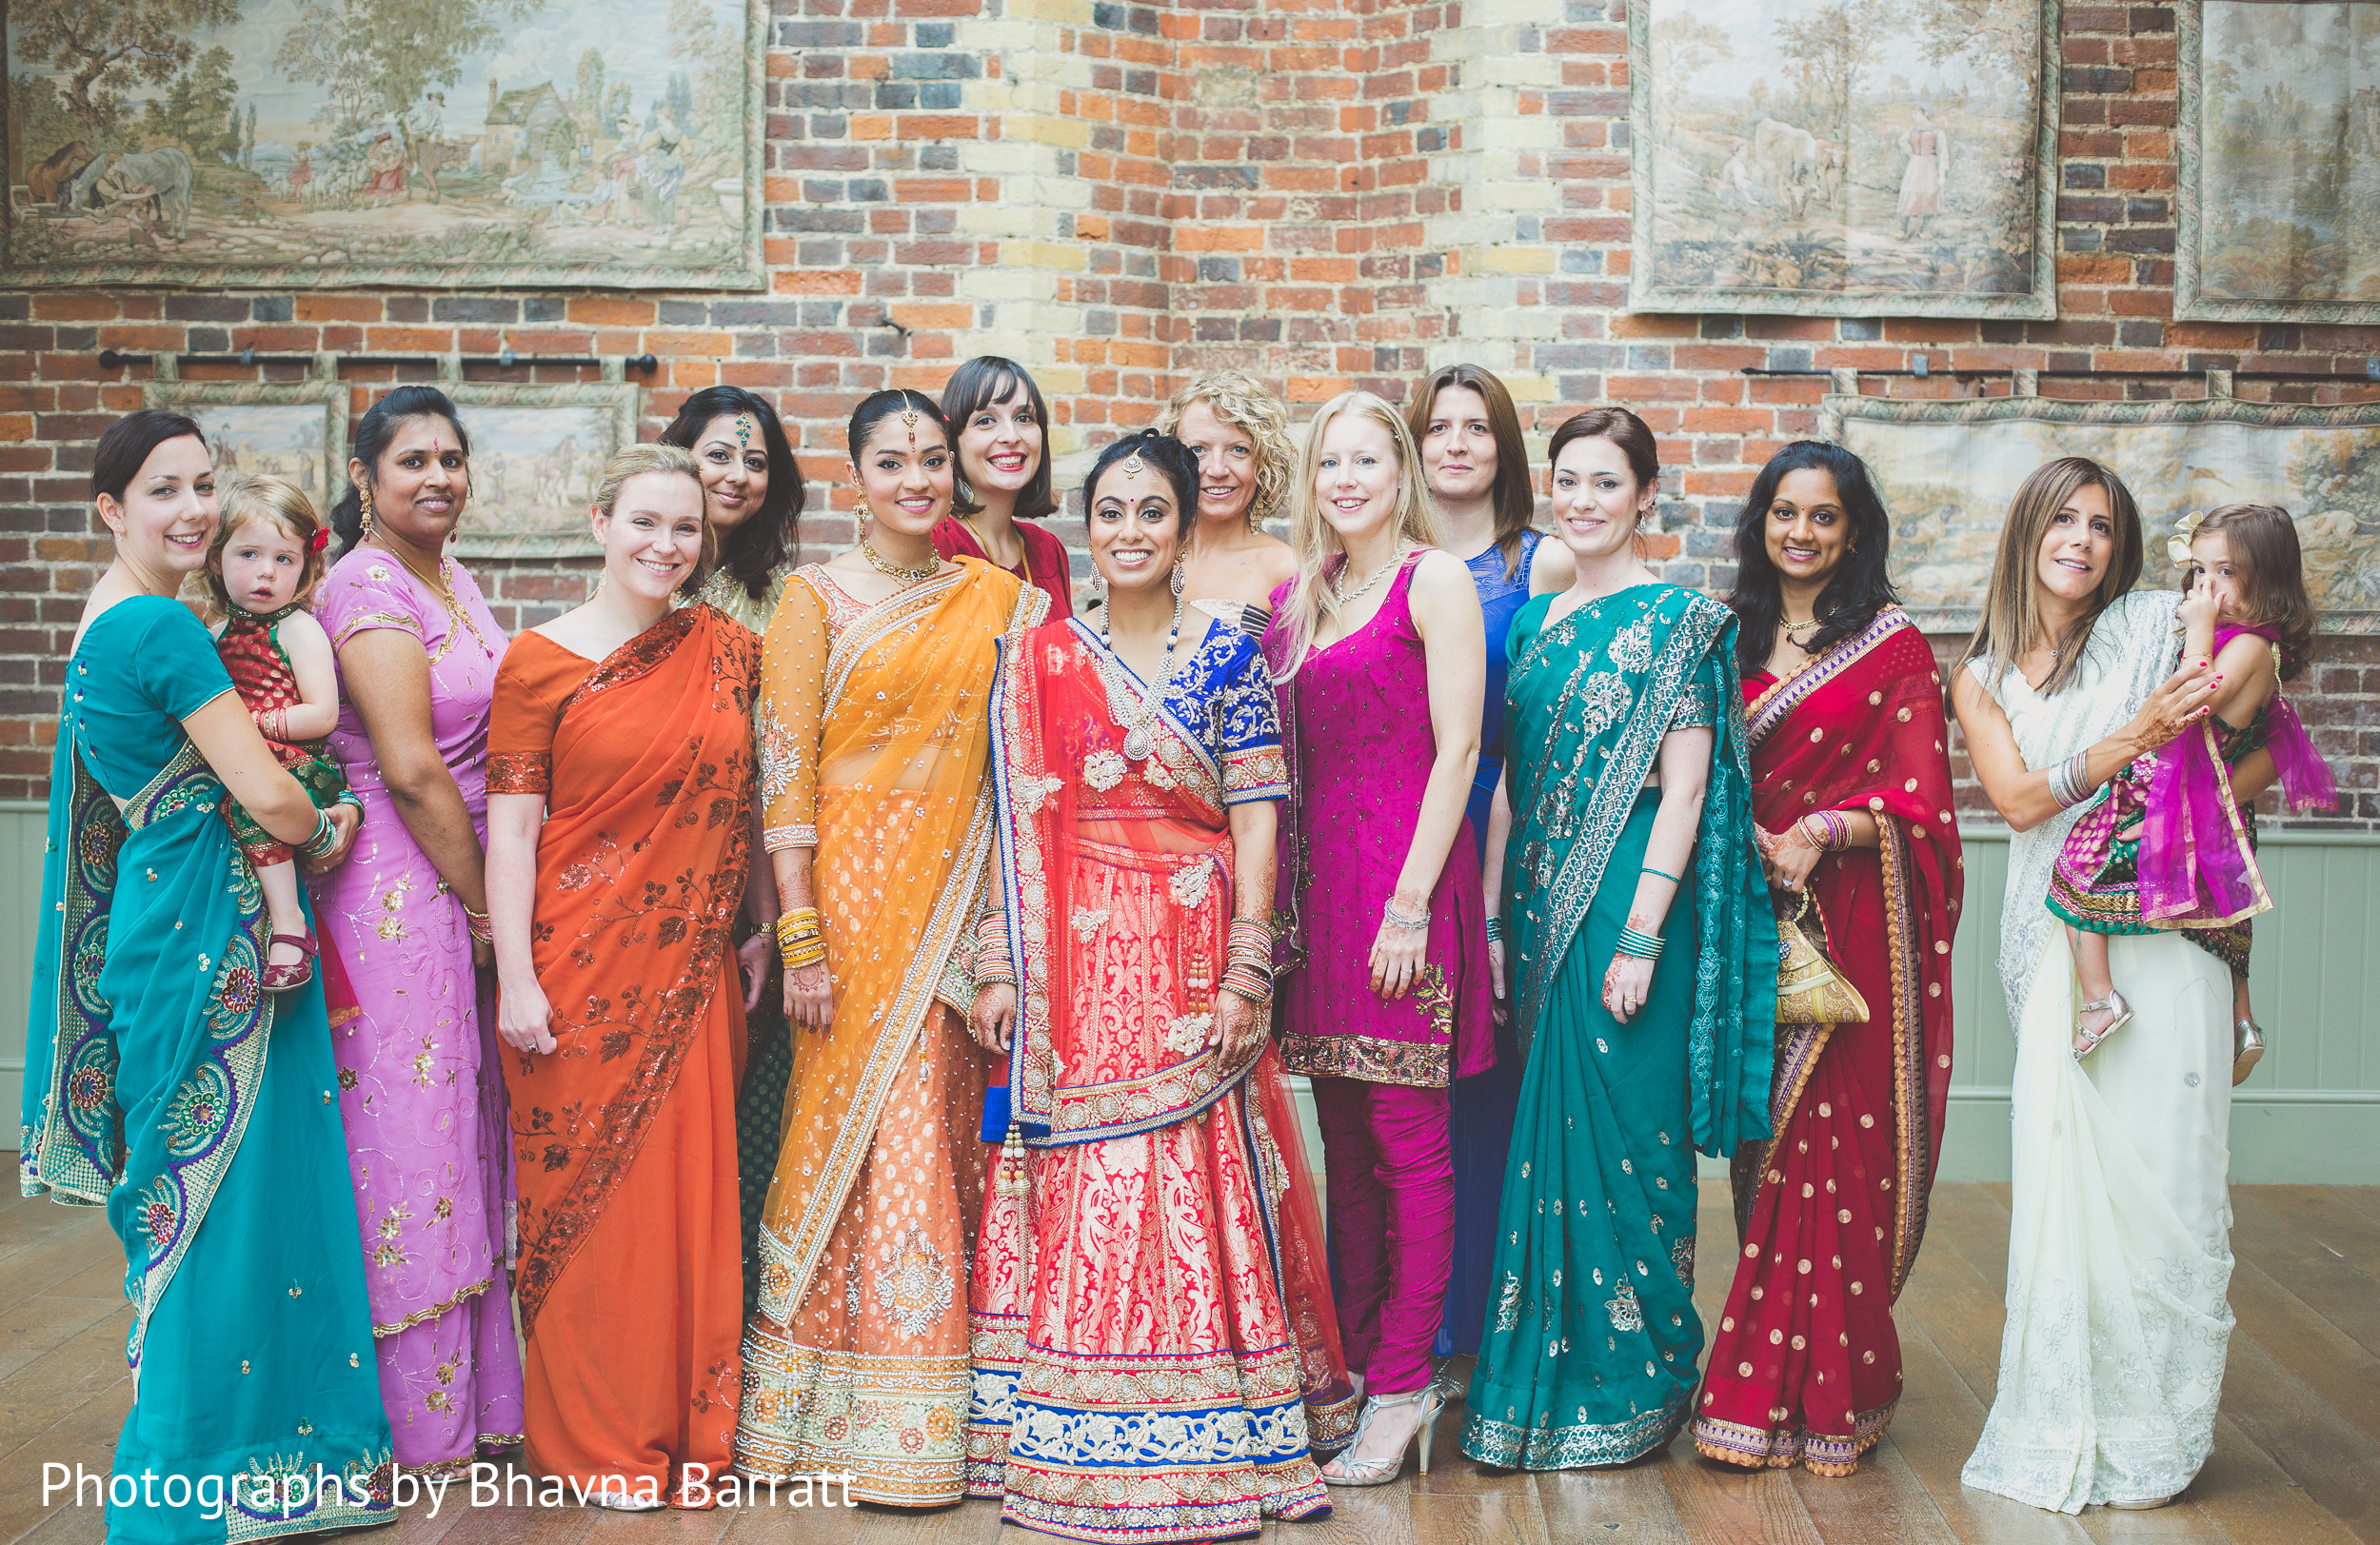 Bridal party in hertfordshire uk indian wedding by for Indian wedding guest dresses uk